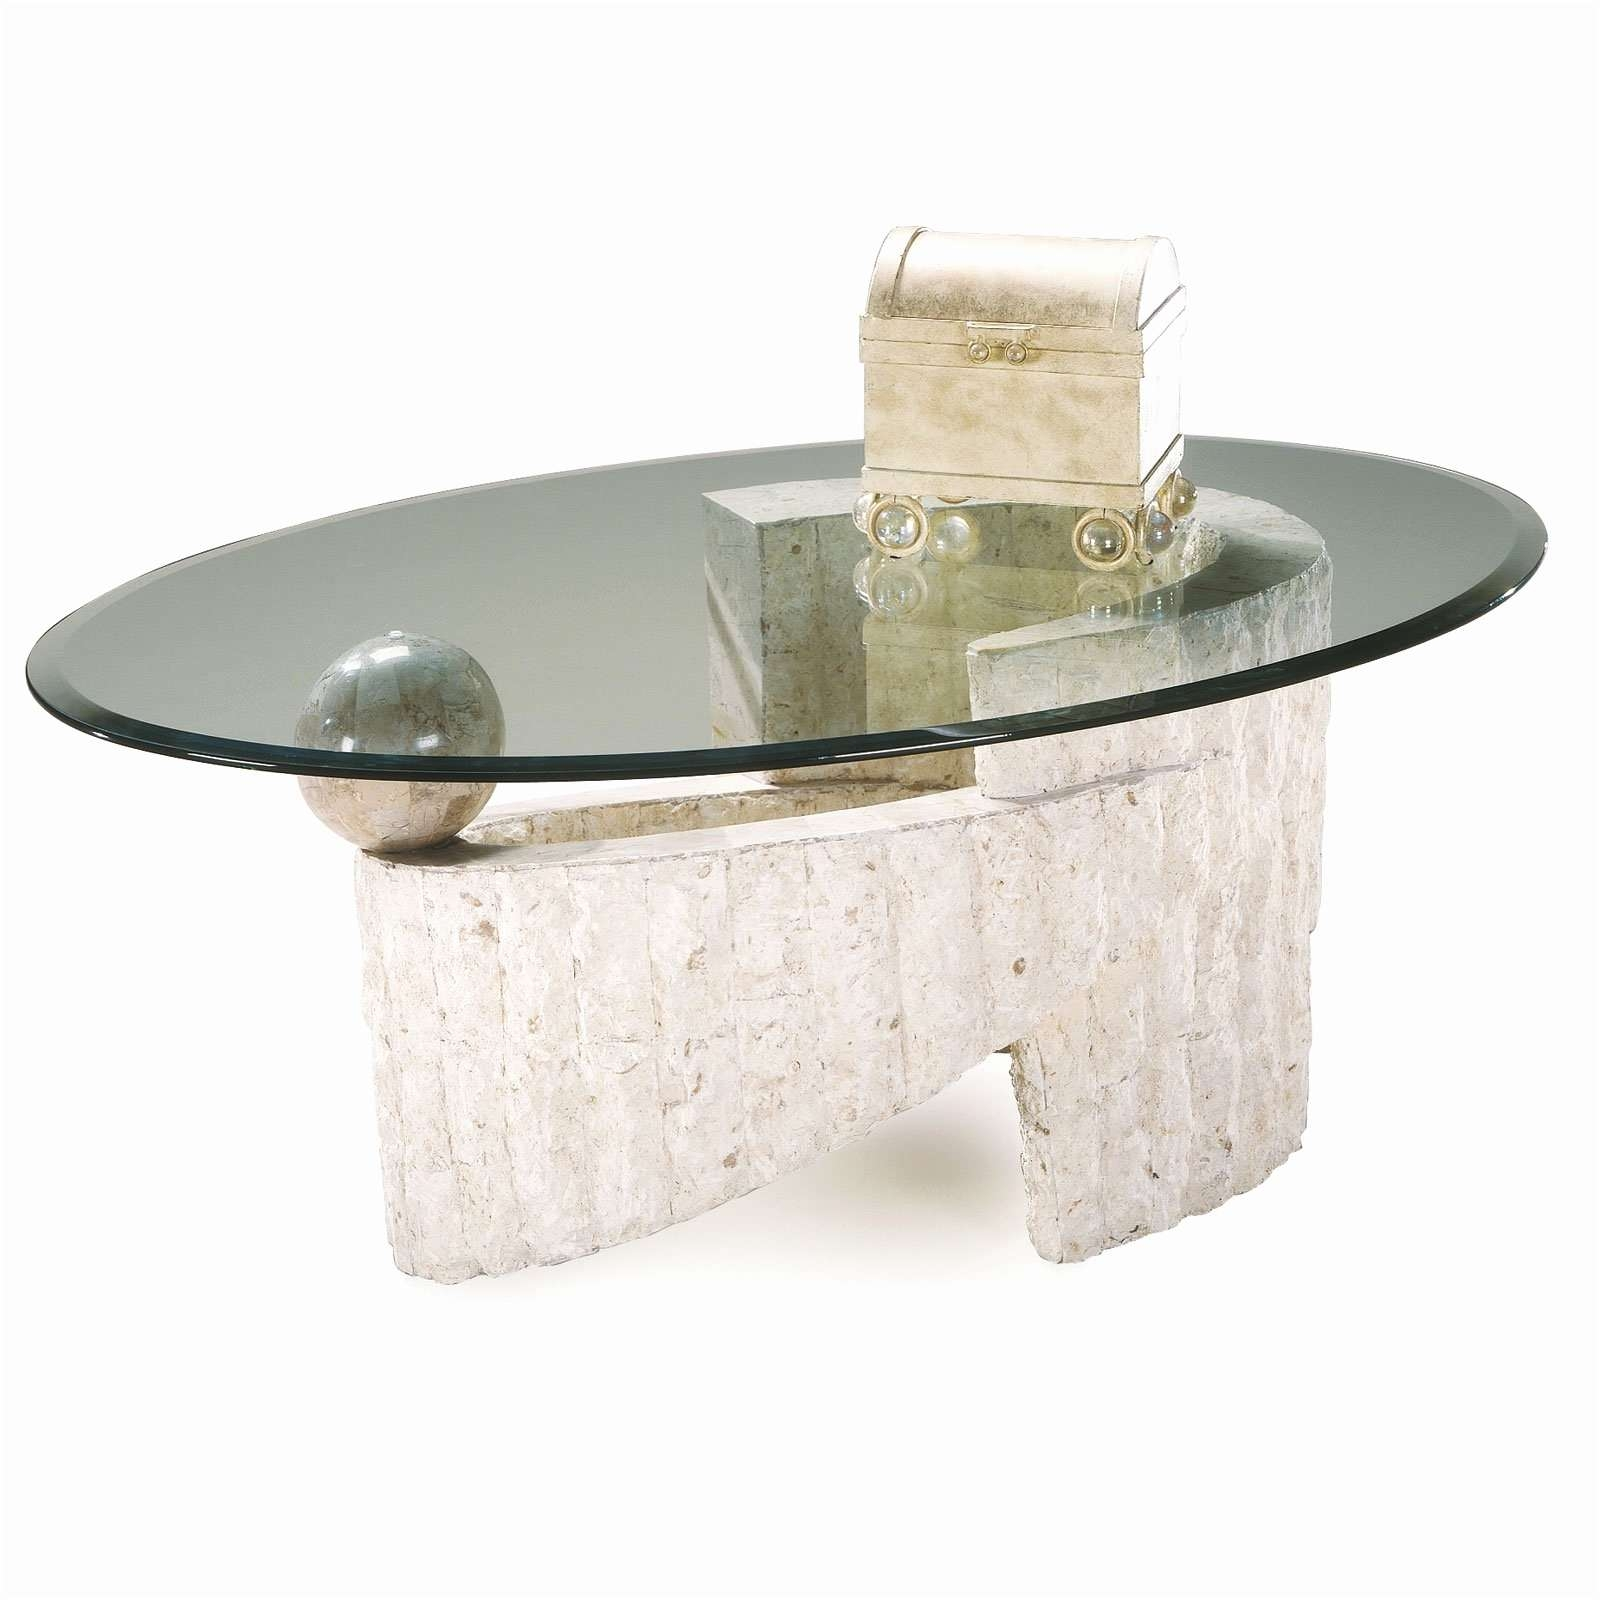 Newest Glass And Stone Coffee Table In Coffee Tables : Stone Coffee Table Gardens White With Glass Top (Gallery 16 of 20)